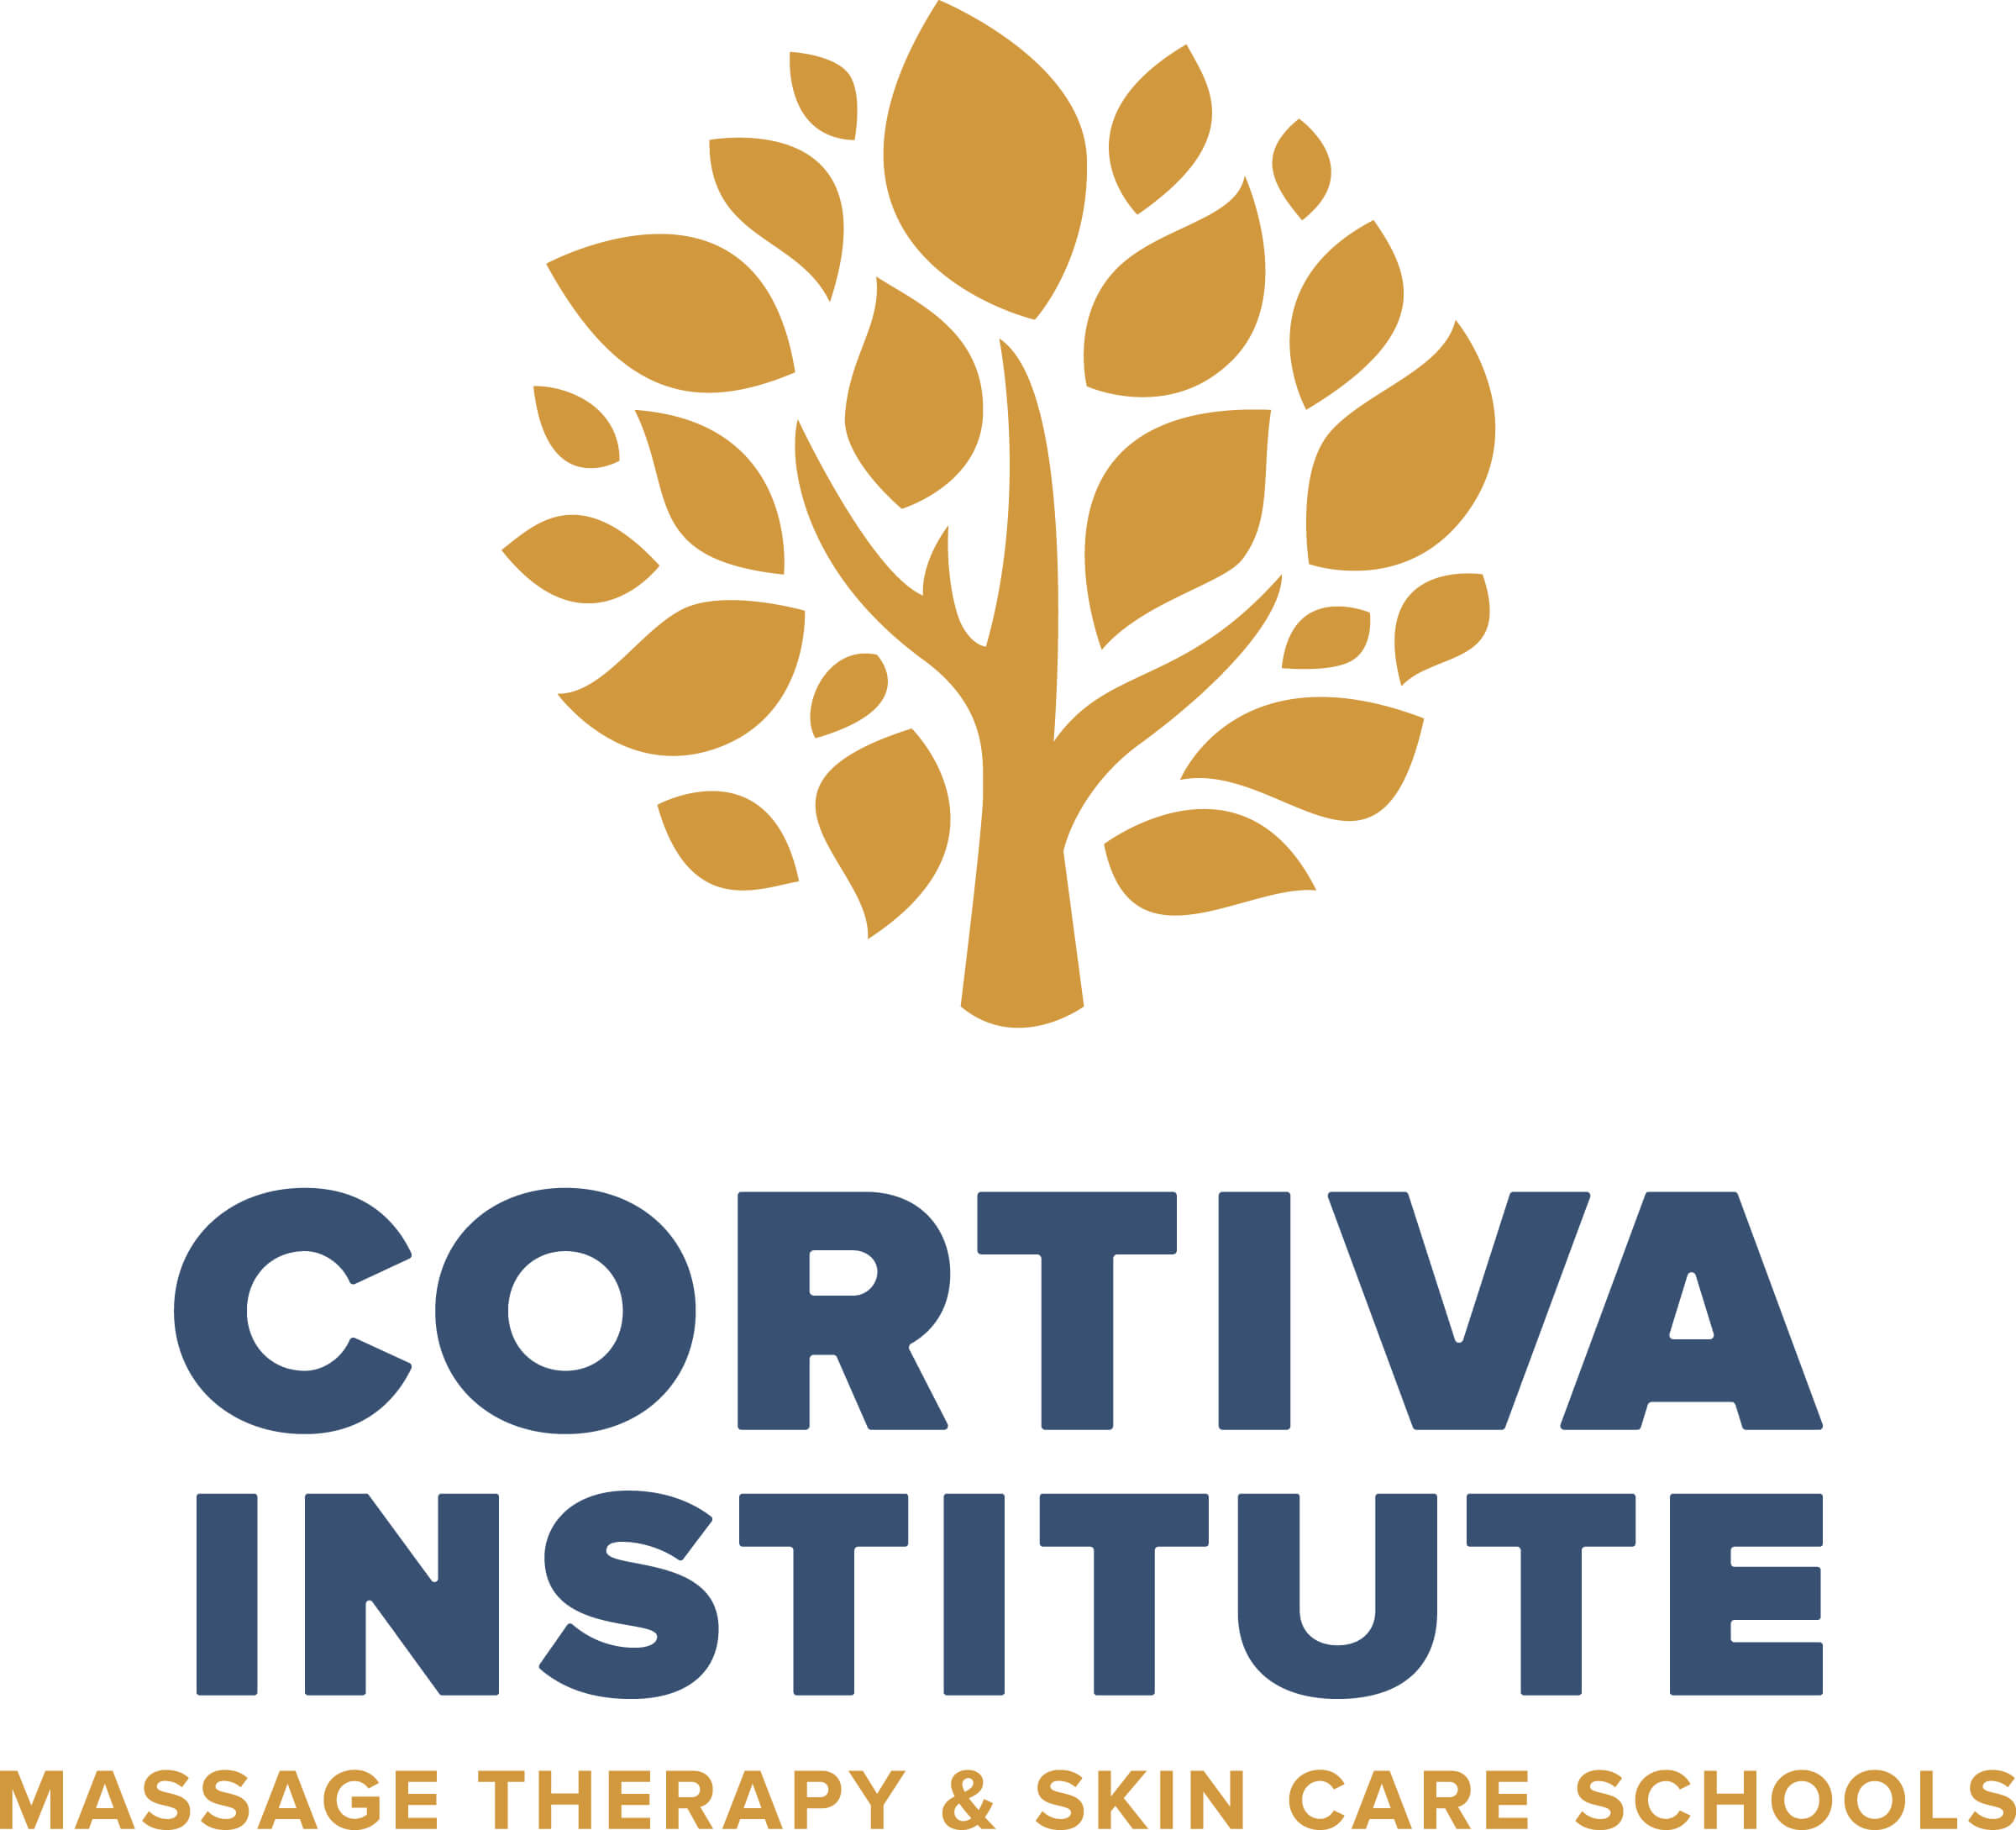 Cortiva Institute - Massage Therapy Schools